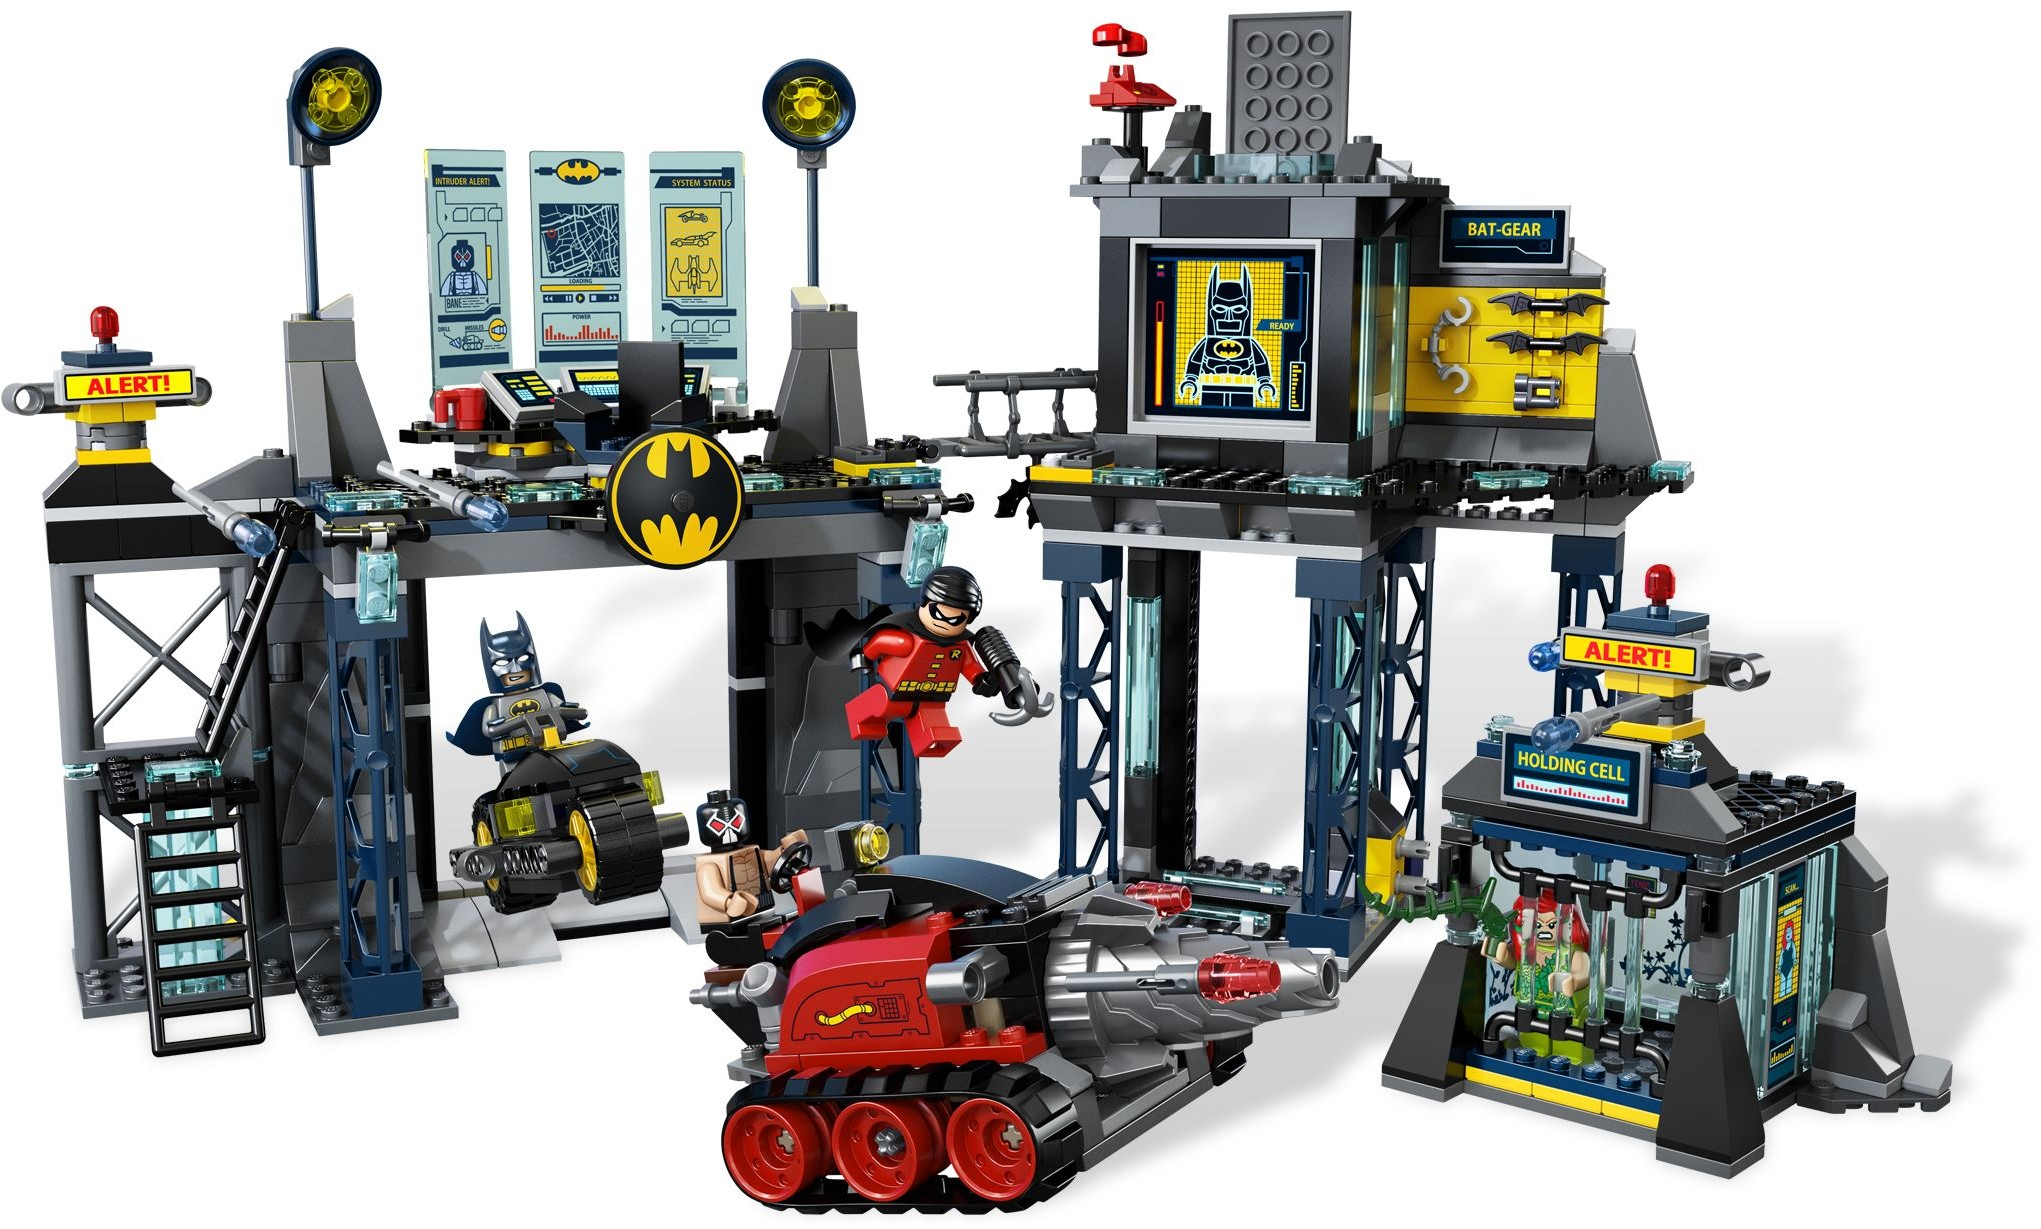 Tagged Poison Ivy Brickset Lego Set Guide And Database 70909 The Batman Movie Batcave Break In